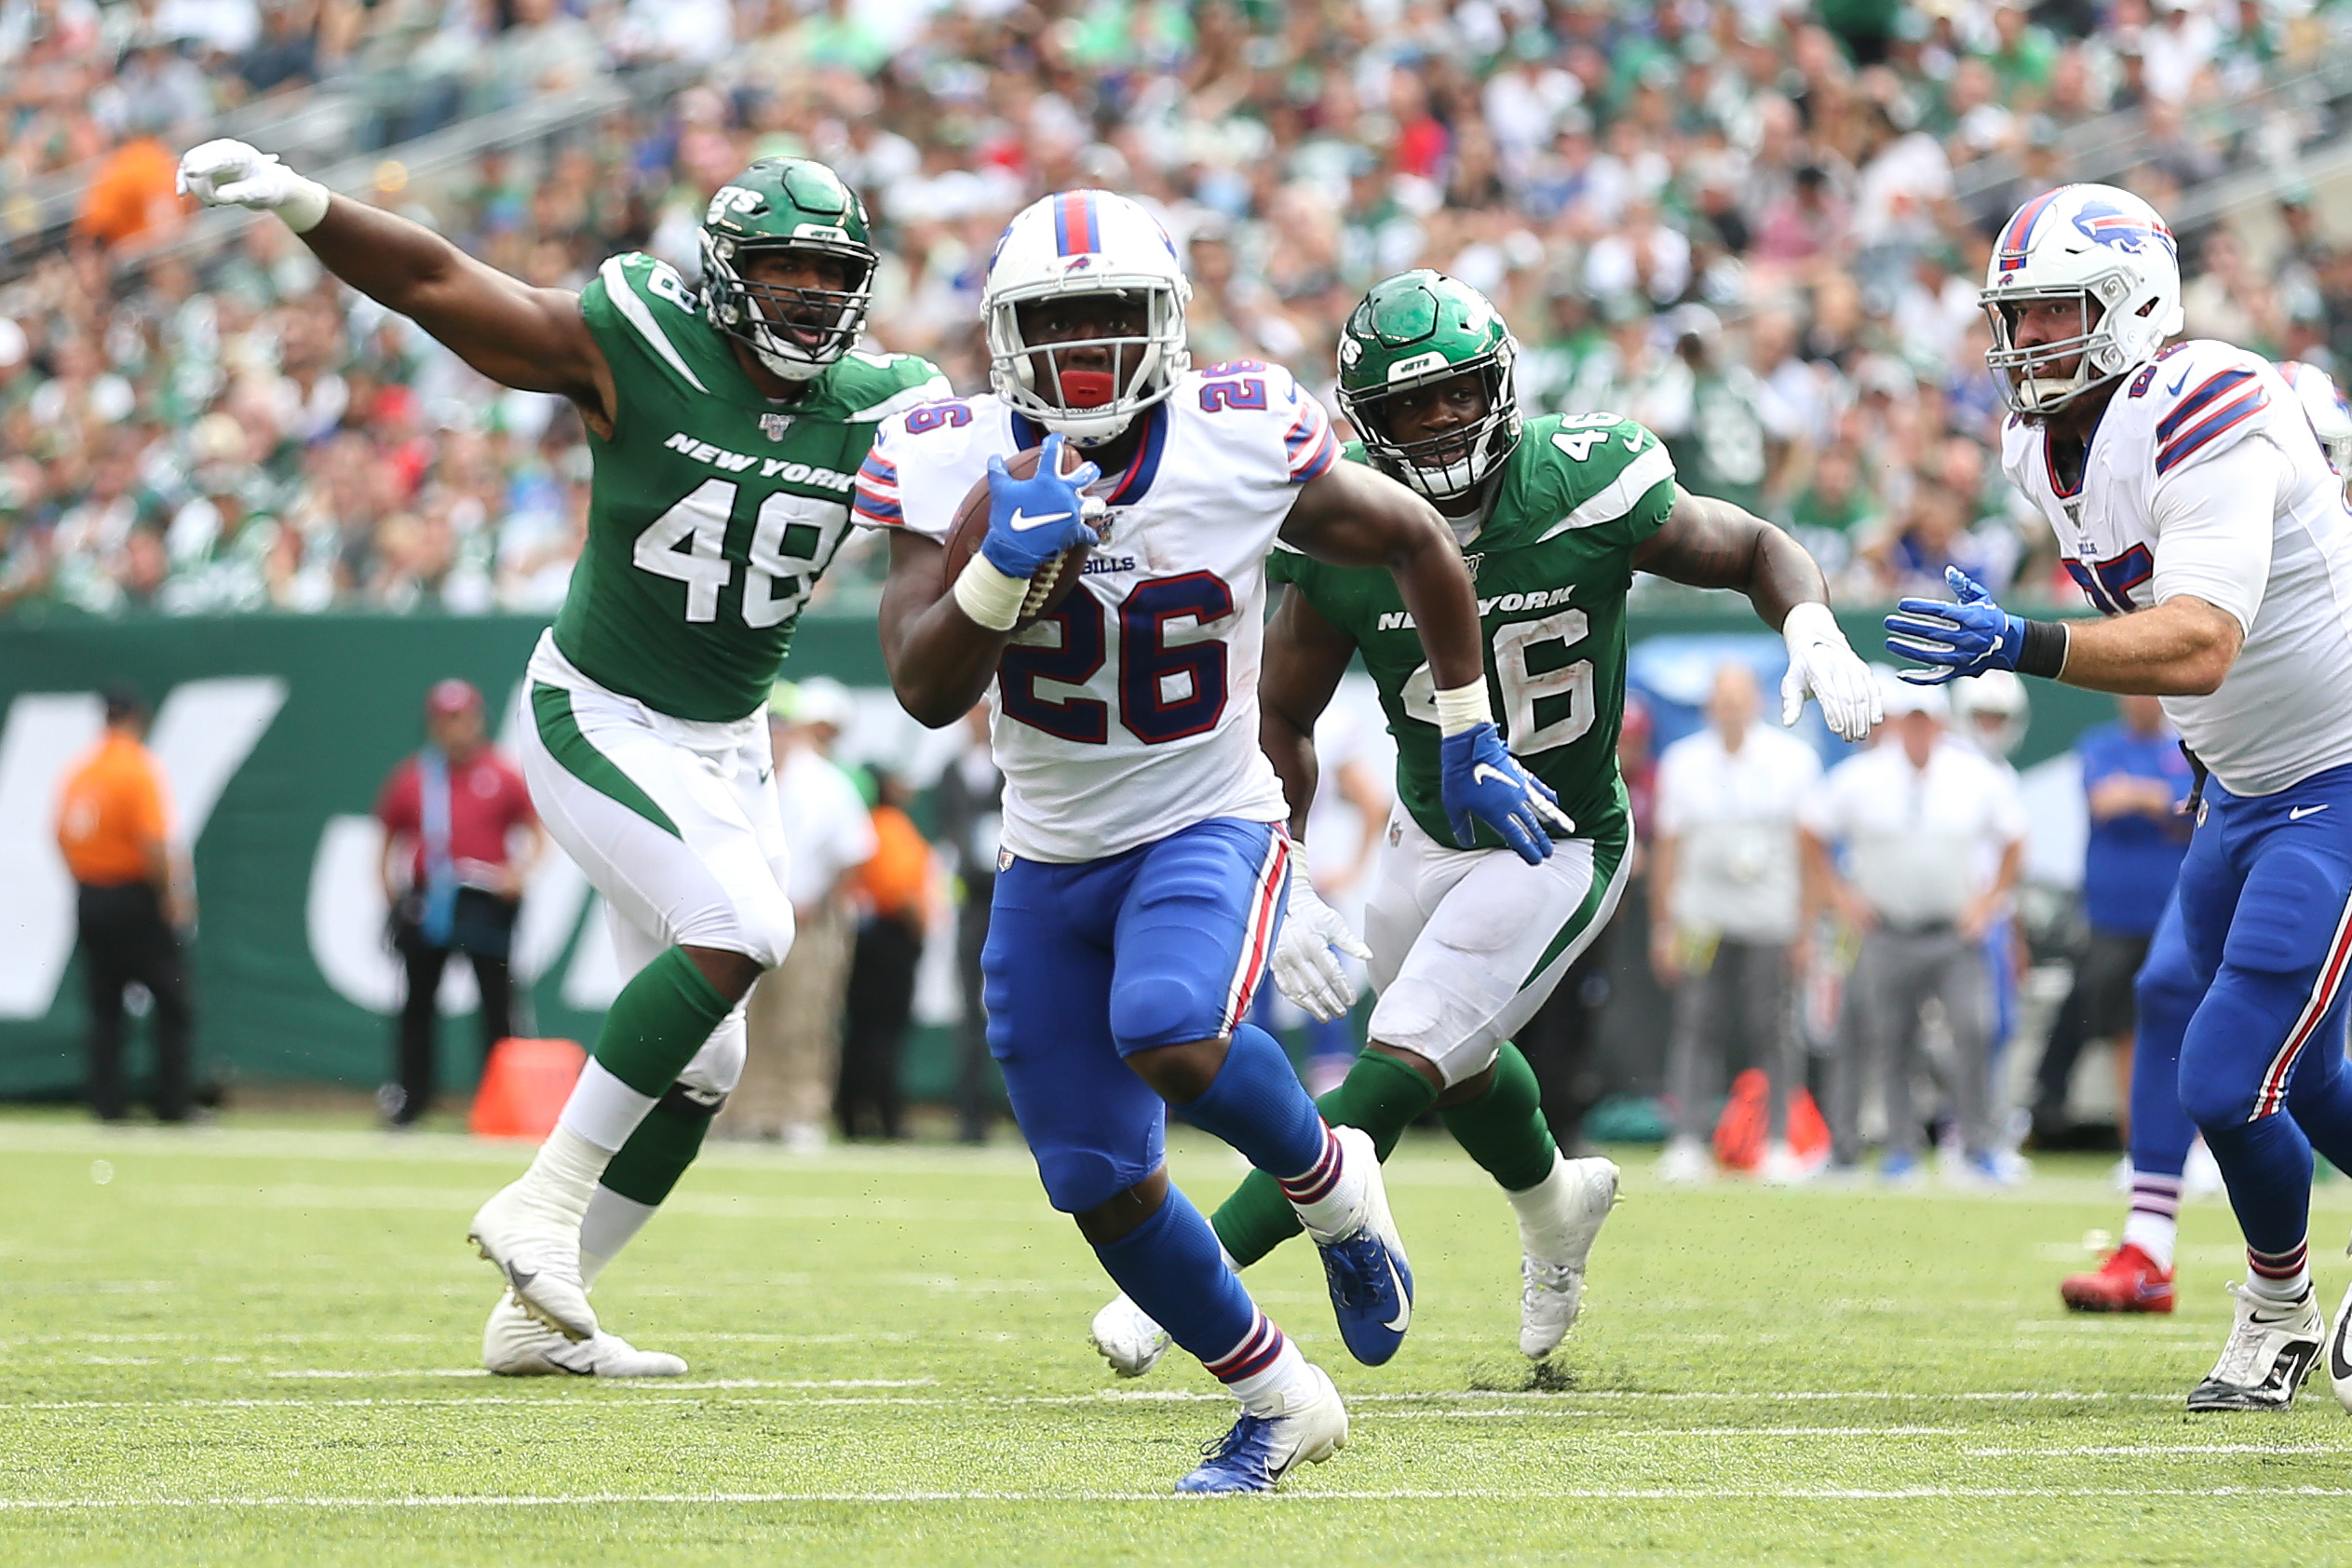 The Buffalo Bills face a New York team -- this time the Giants -- for the second straight week, with a likely similar result to their opening win.